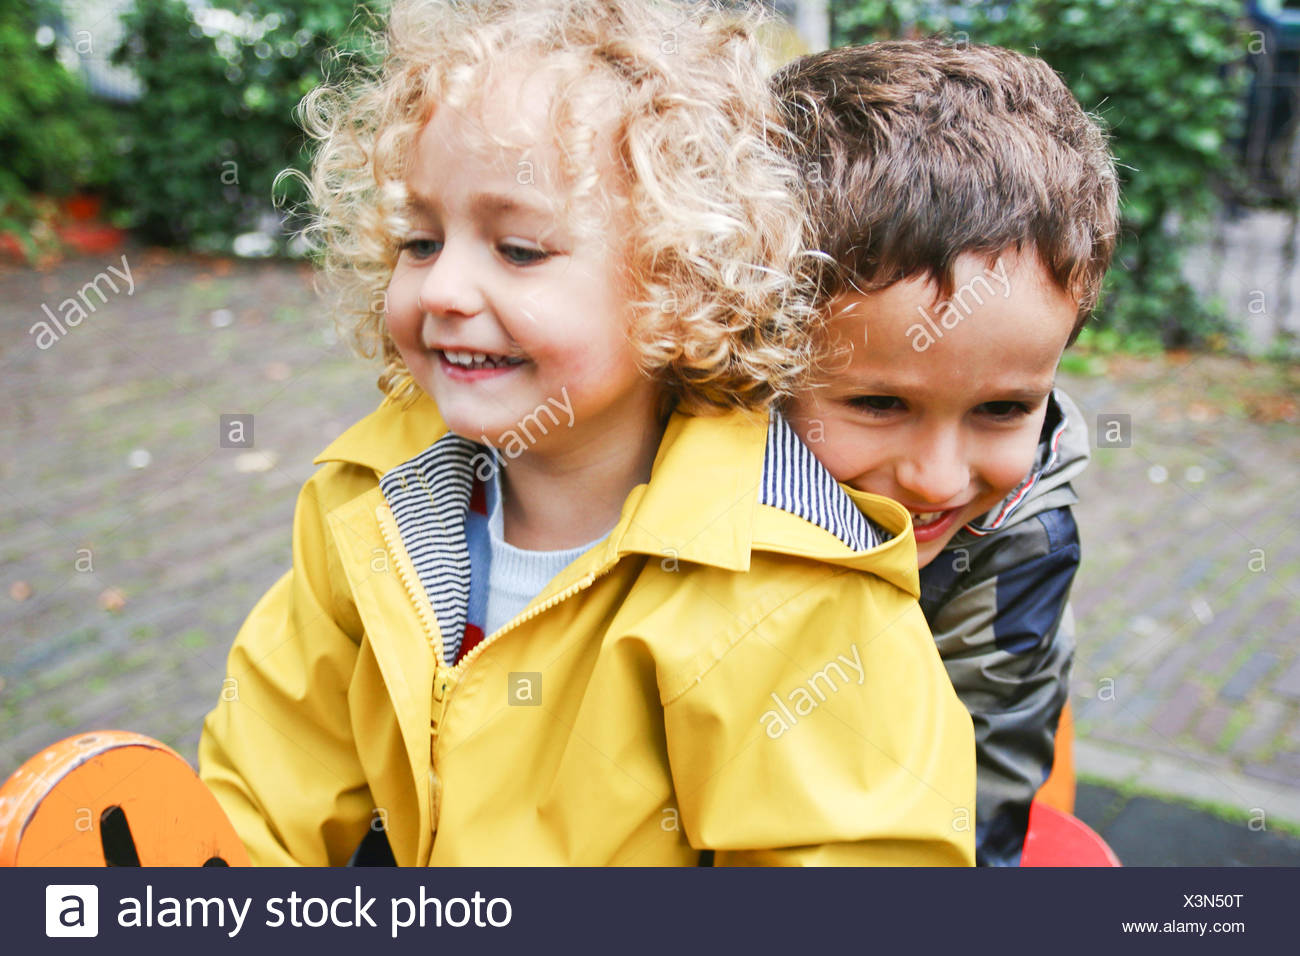 Smiling Boy and girl sitting on spring ride in playground Stock Photo